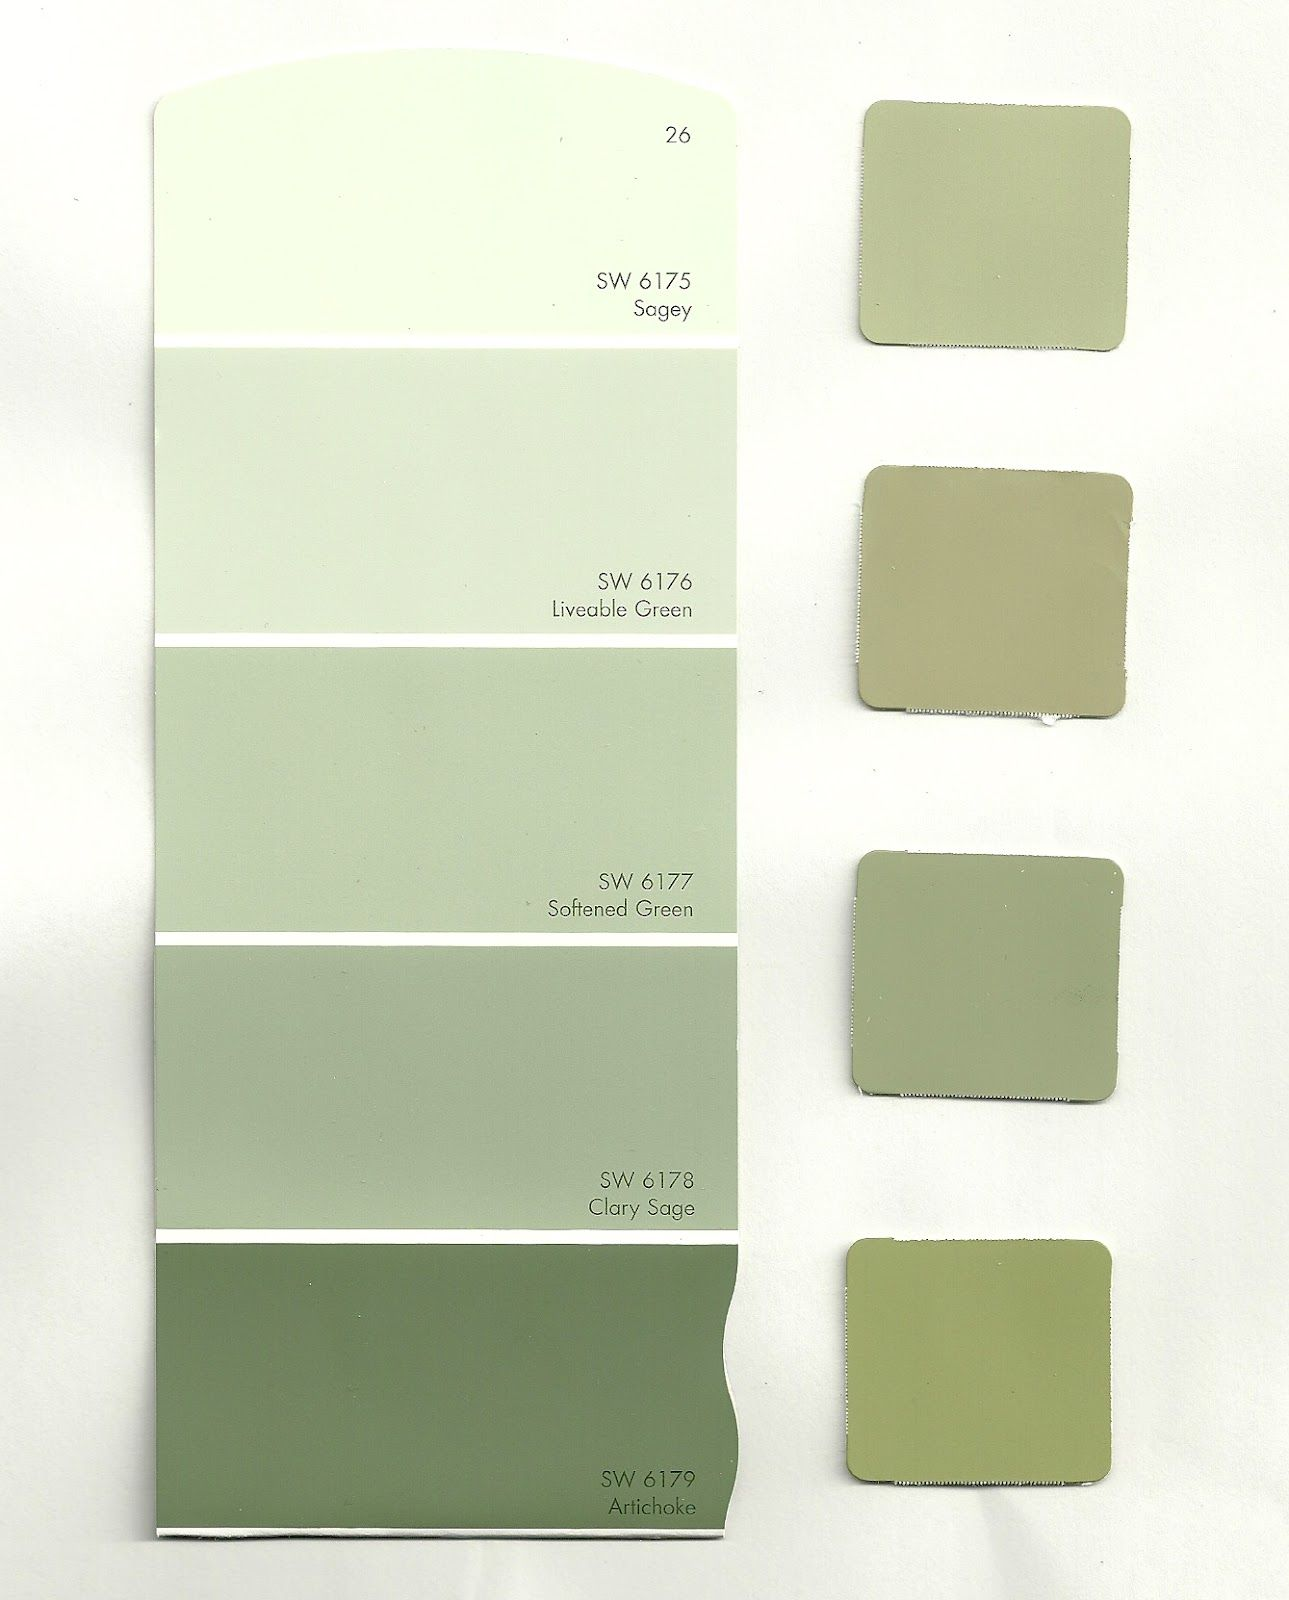 Sage paint colors Hazy Sherwin Williams Green Paint Colors We Are Looking For Middle Shade Of Olive Or Sage To Compliment The Pinterest Sherwin Williams Green Paint Colors We Are Looking For Middle